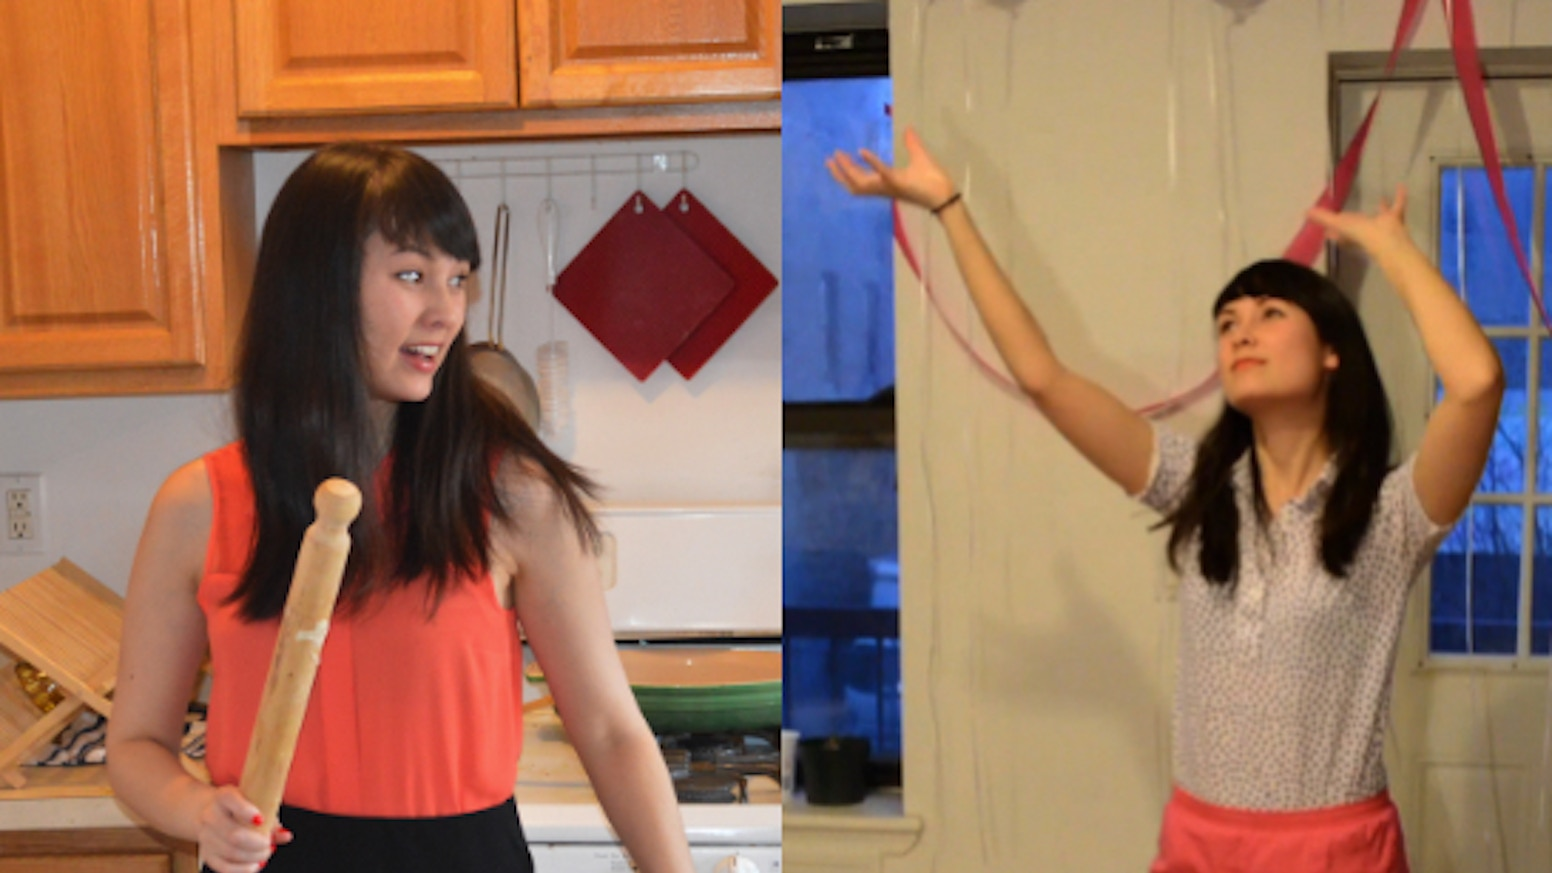 A webseries! Each episode is half pizza cooking show, half pizzercise!